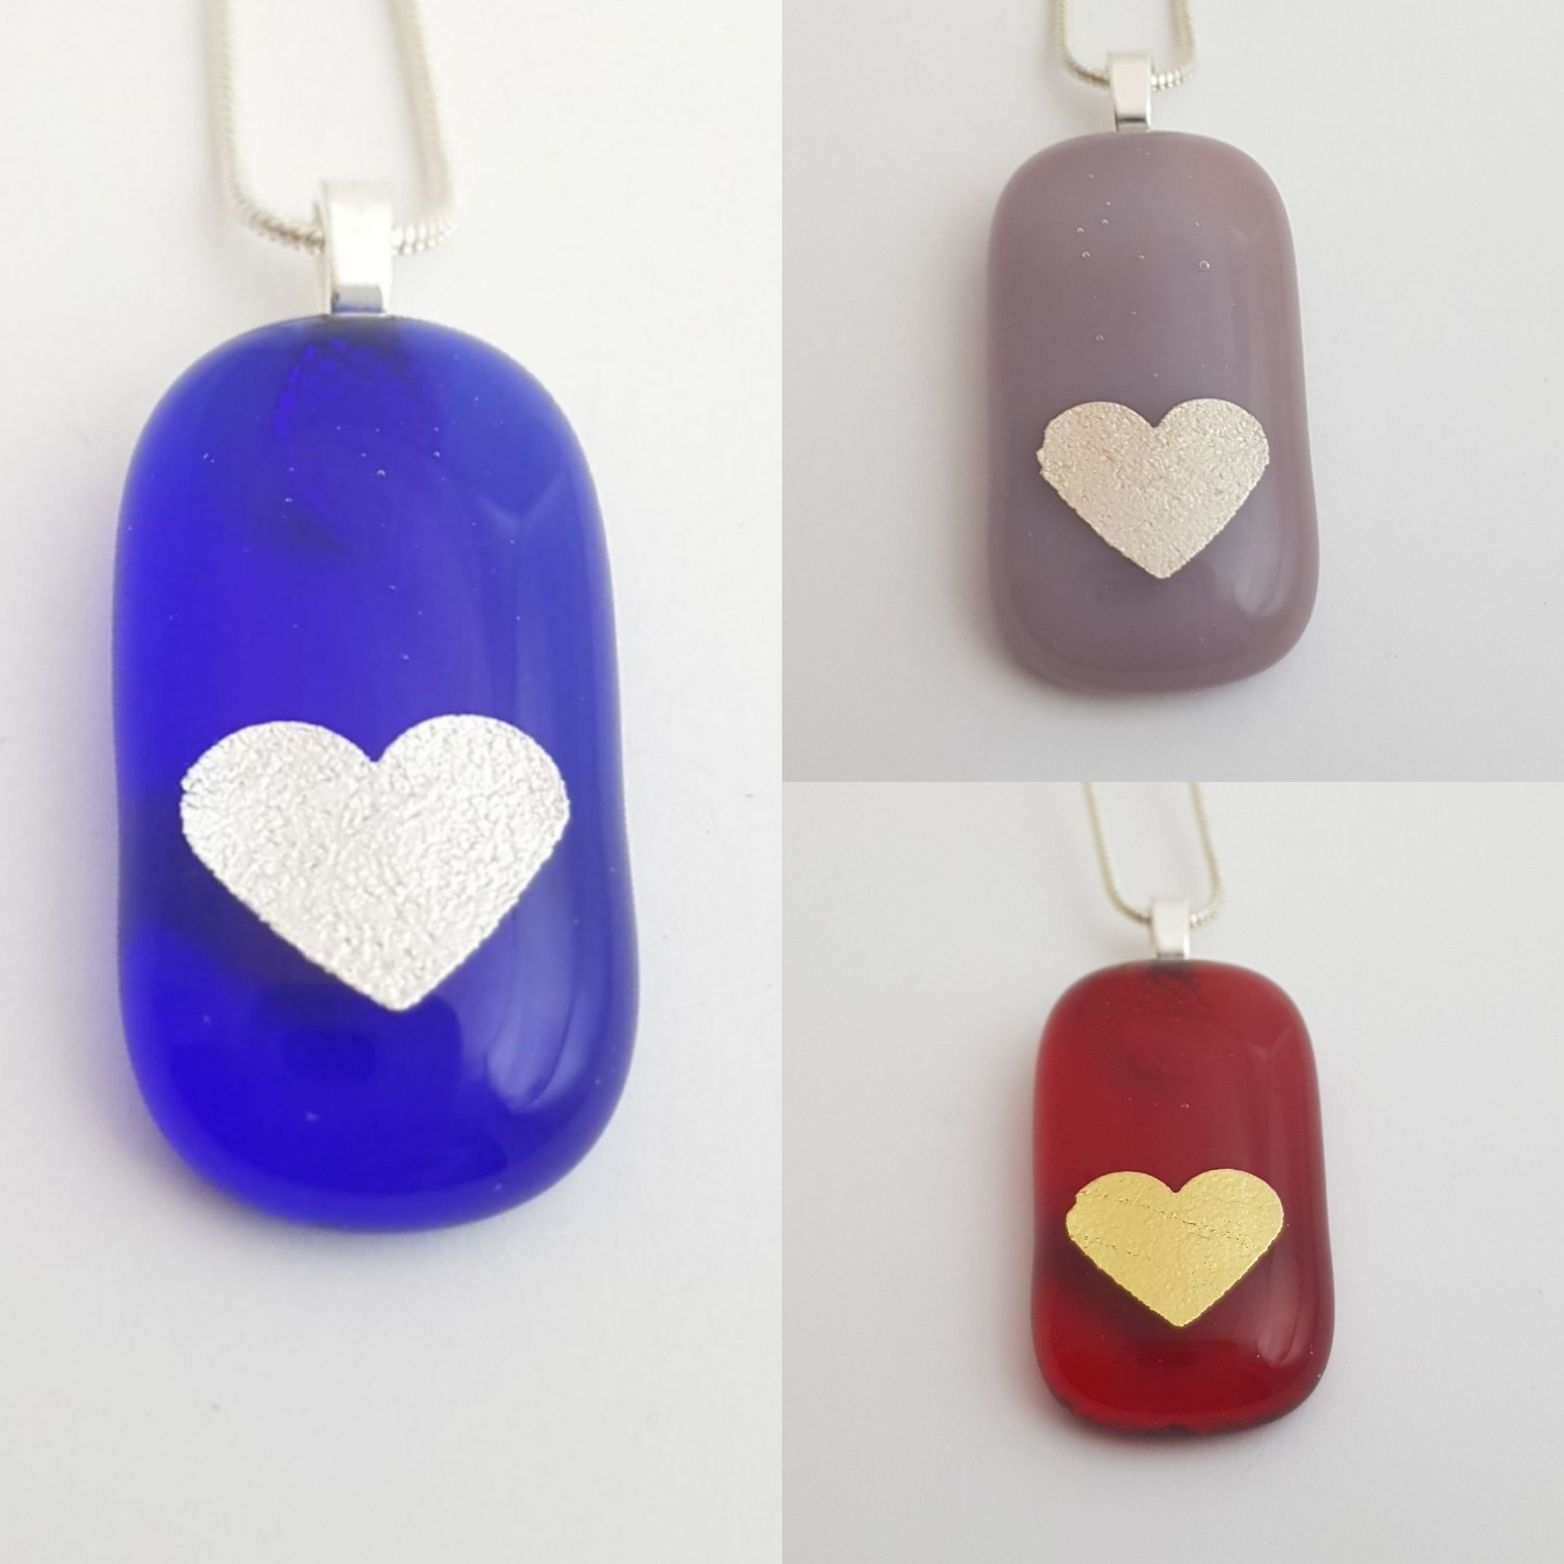 memorial ashes inside glass jewellery